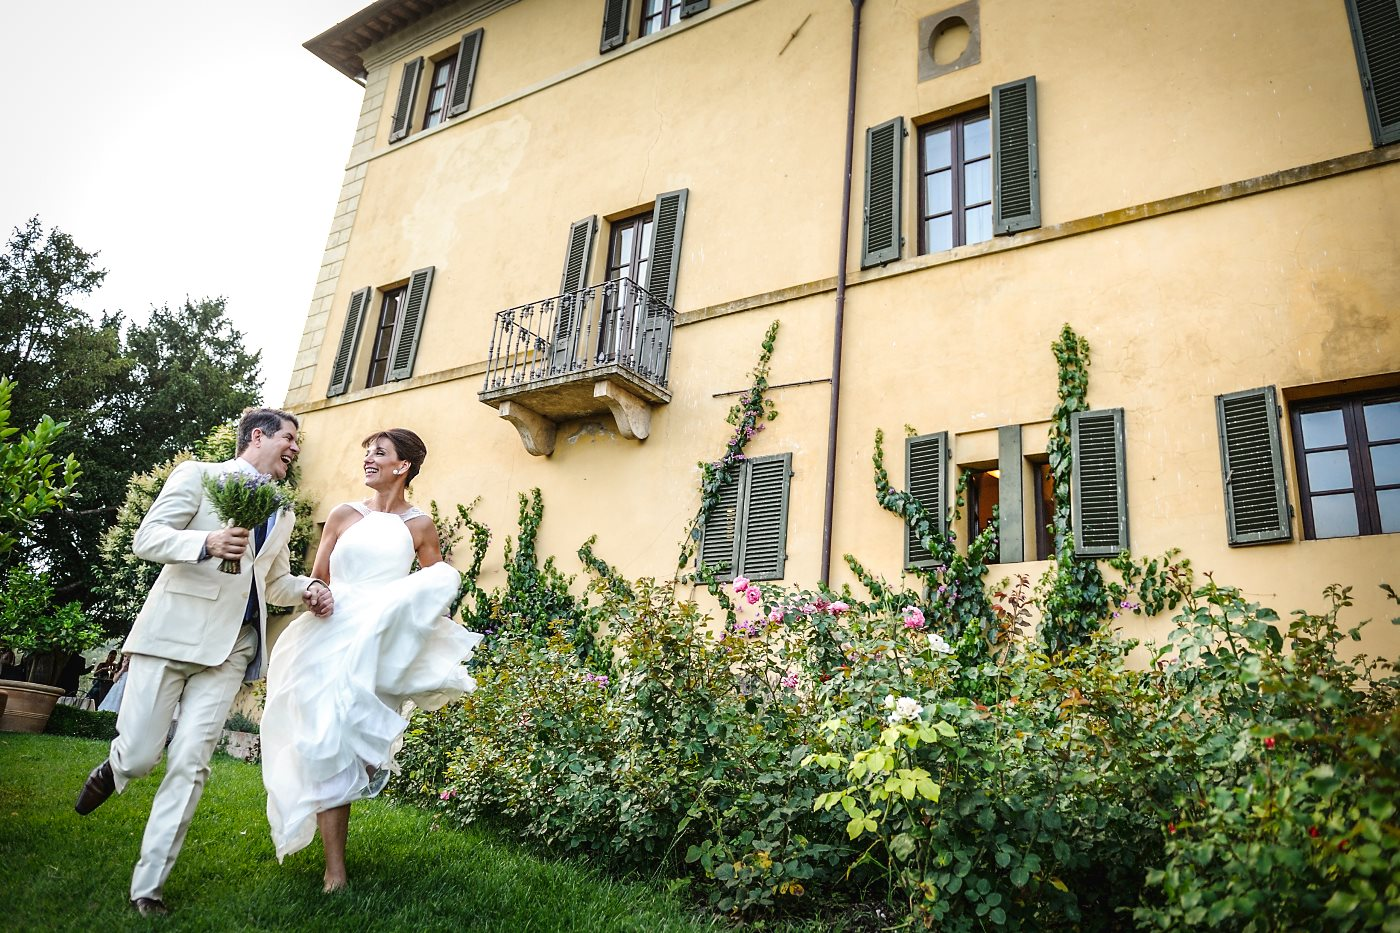 wedding photo villa dievole_15.jpg